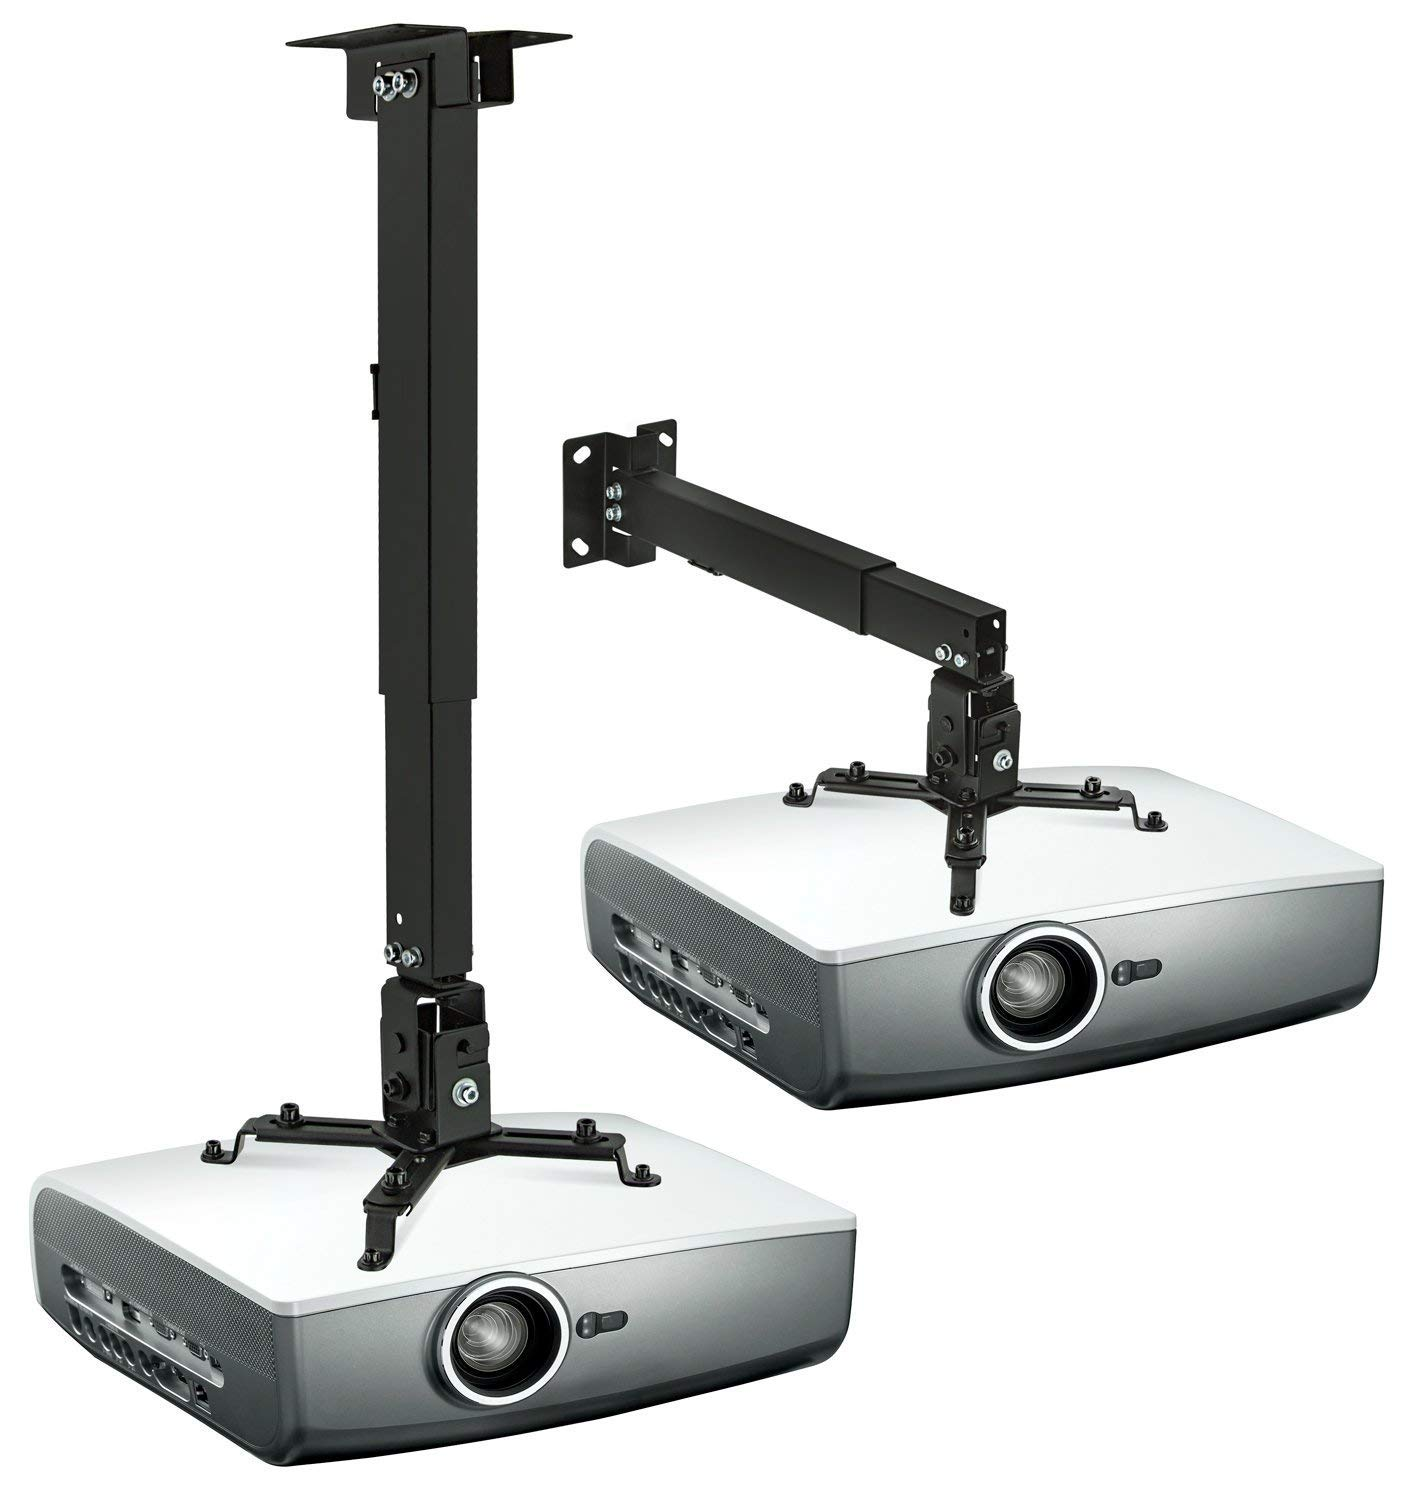 Universal Projector Ceiling Mount,LANMI Adjustable Mount,Length can be adjusted,17''-25.56'',for LCD/DLP Ceiling Projector Epson Optoma Benq ViewSonic(4365.black) by LANMI